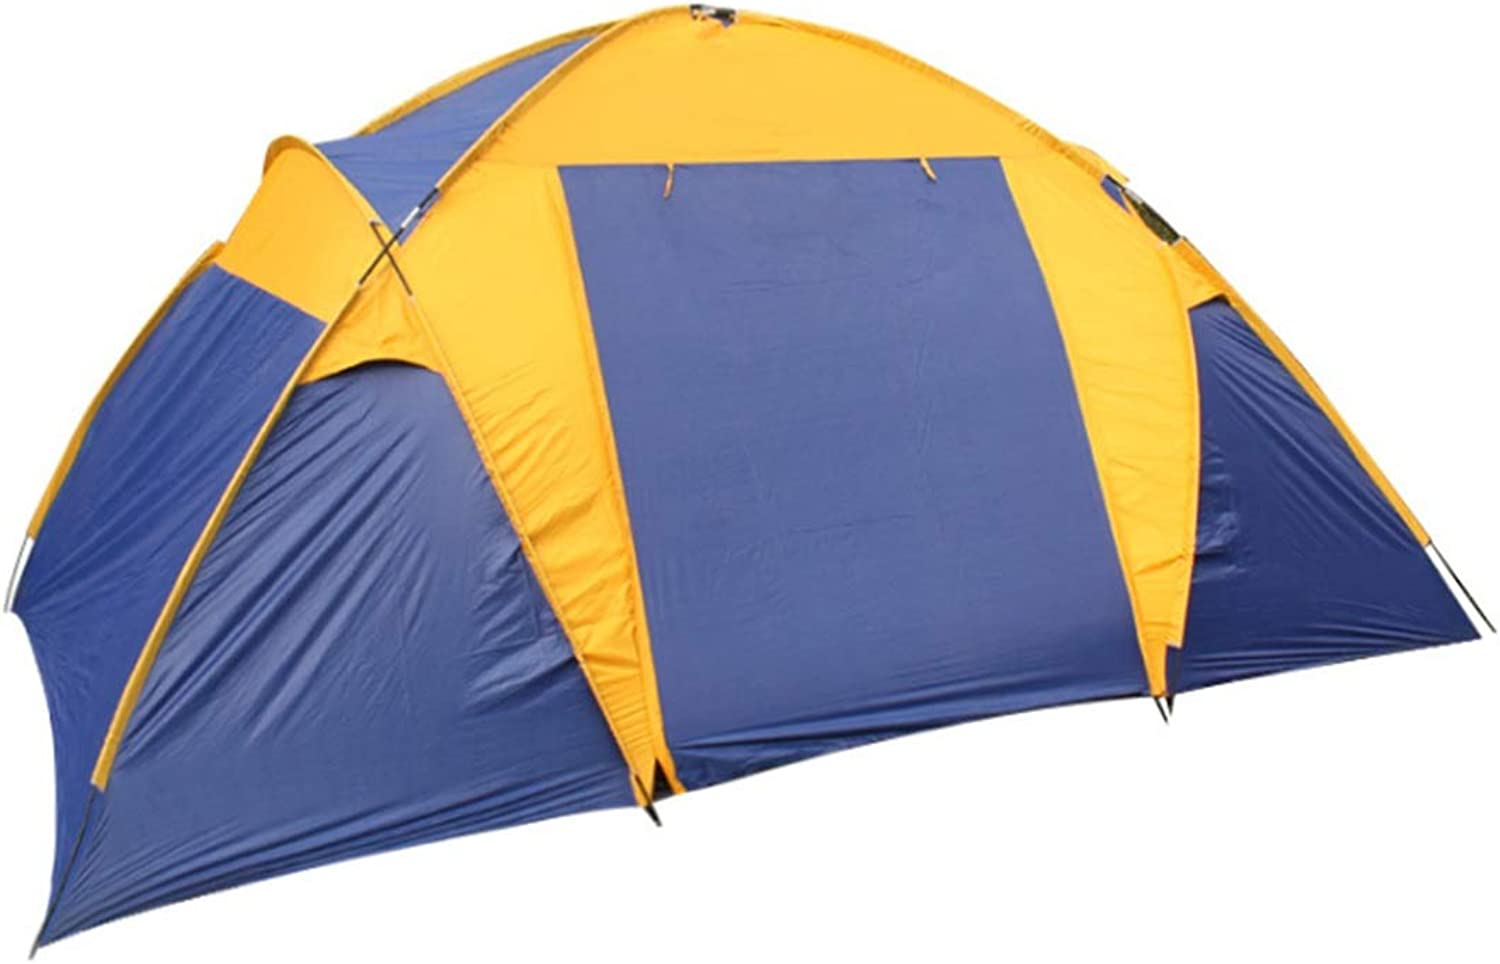 Kirabon 5 Person Two Rooms and One Living Room Outdoor Tent for Wild Camping